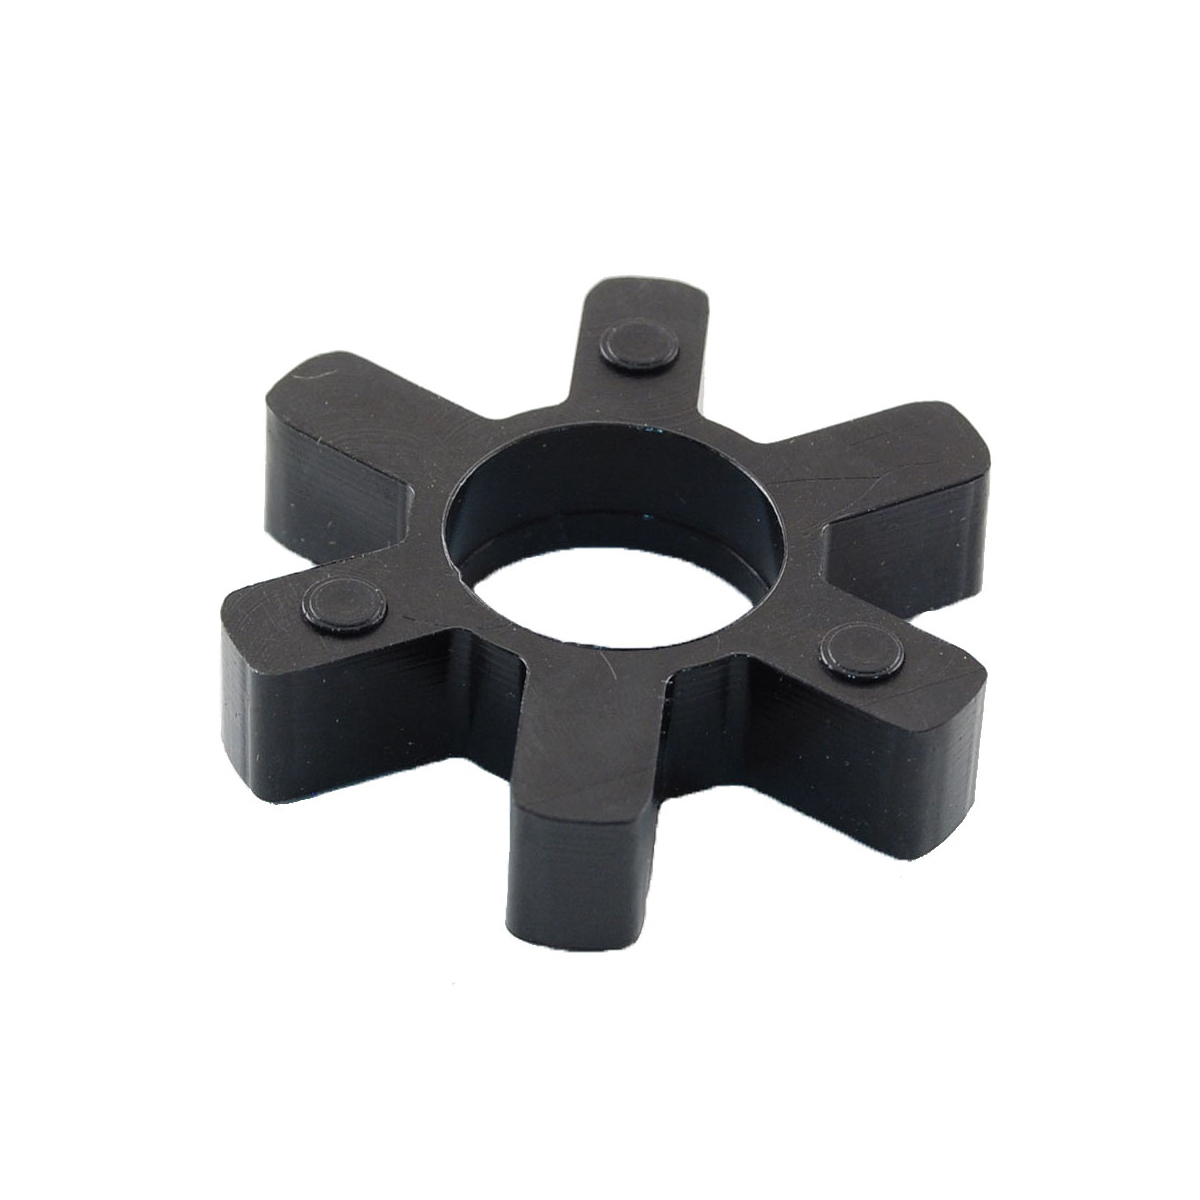 spider coupling bushing 735-04103